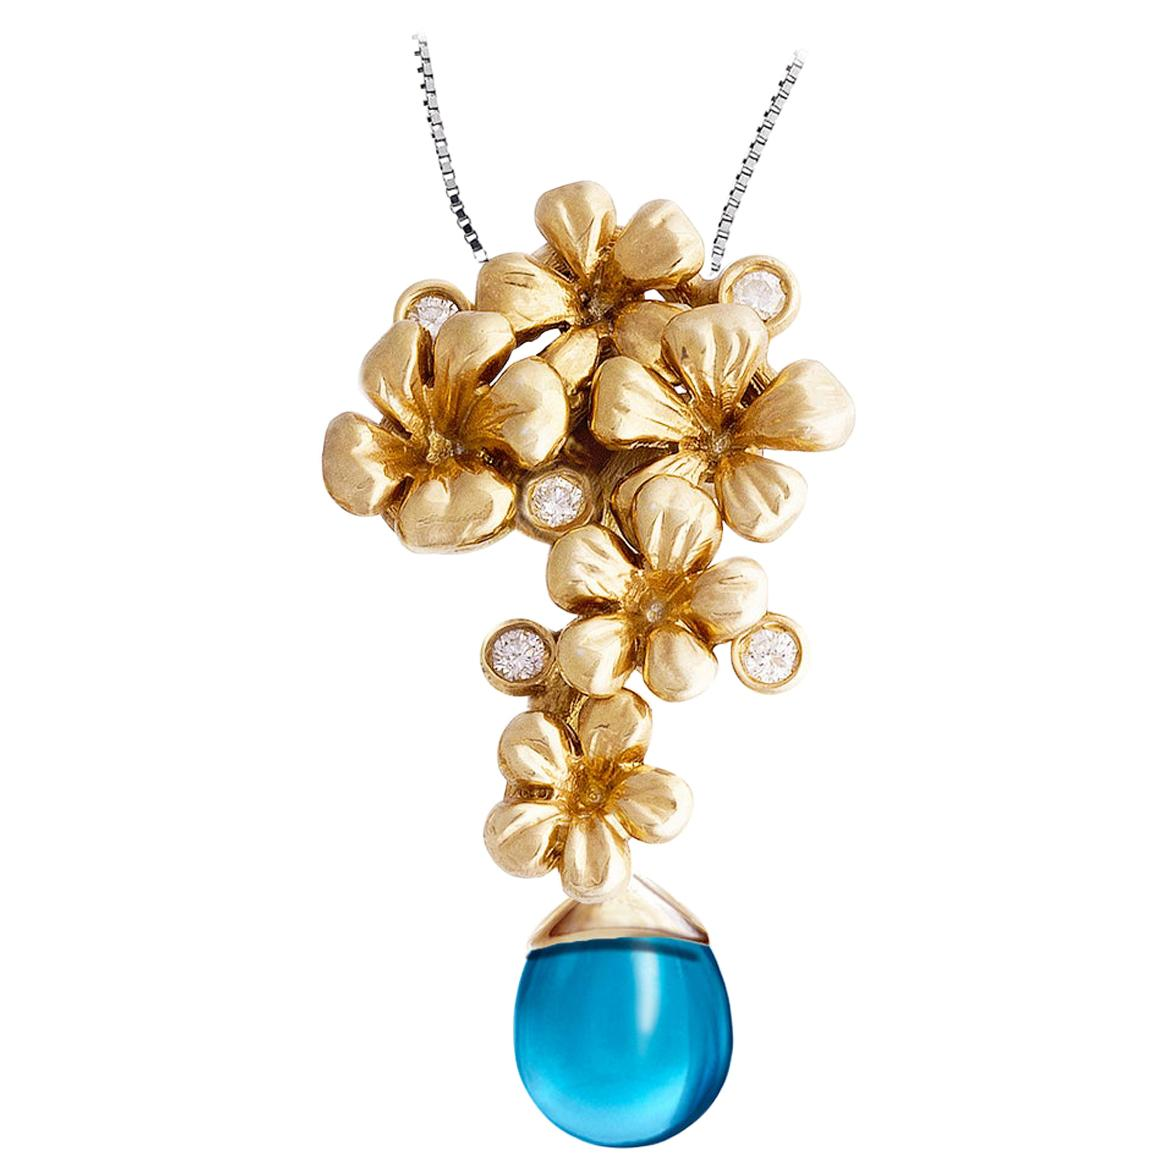 18 Karat Yellow Gold Modern Pendant Necklace with Diamonds and Removable Topaz